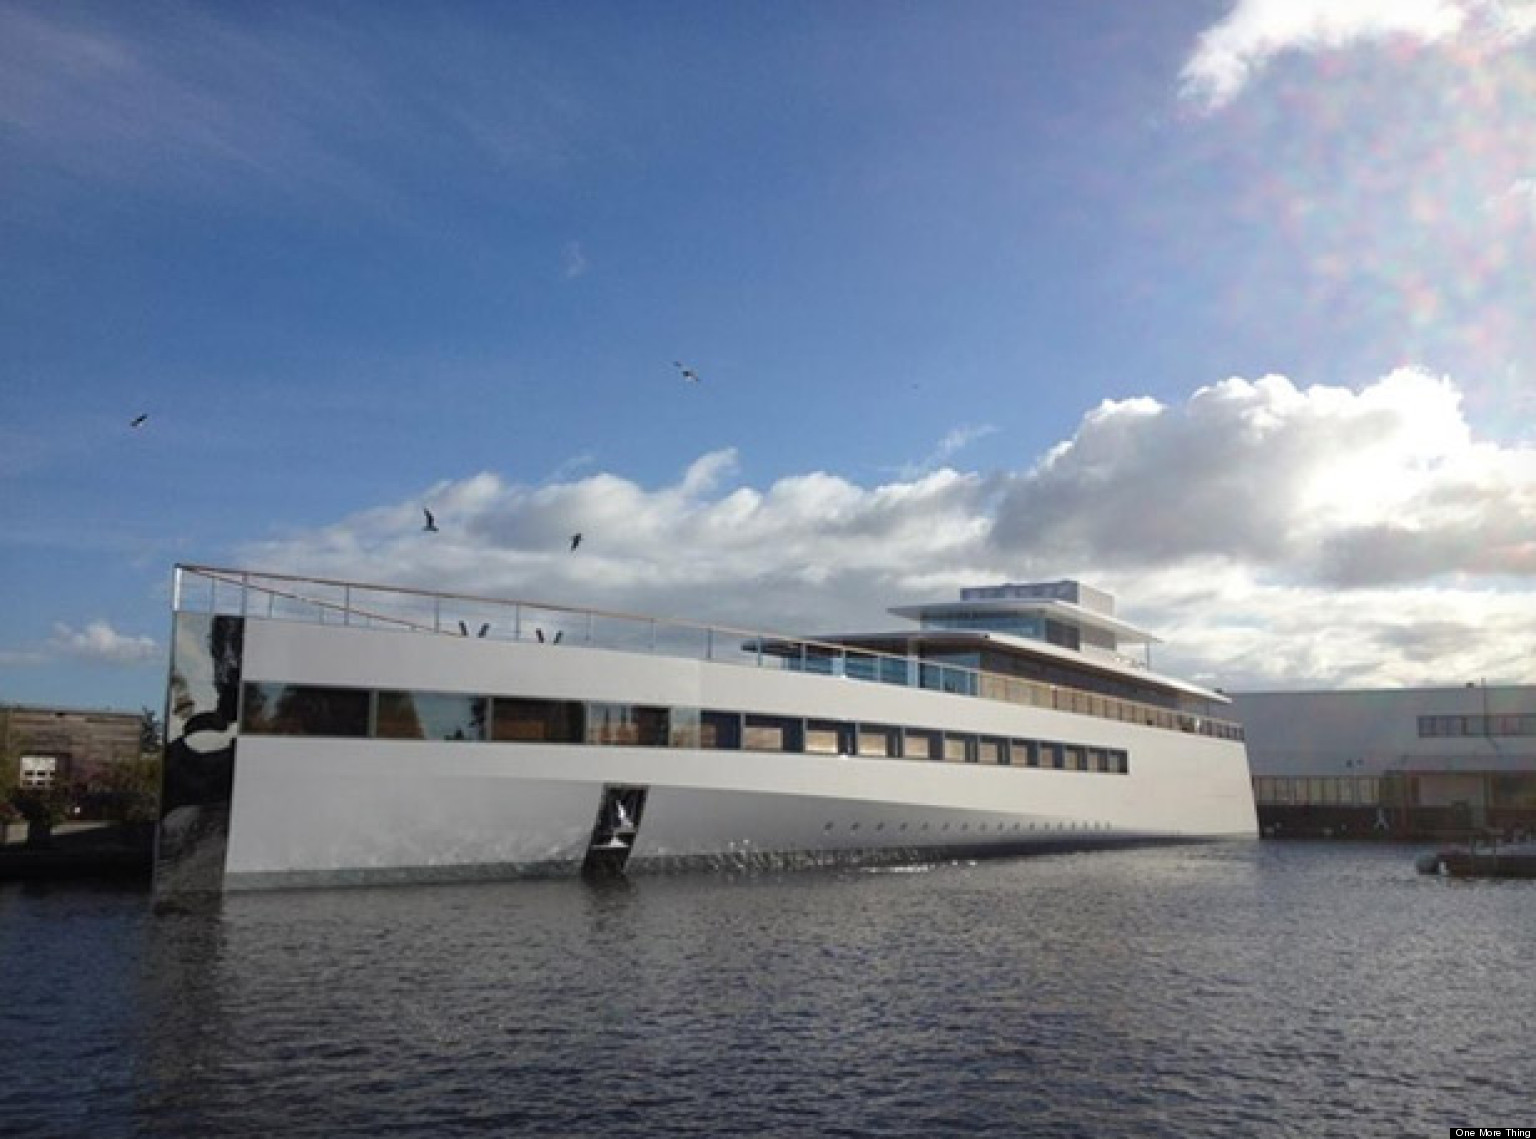 Apple Founder Steve Jobs' Yacht Finished One Year After ...